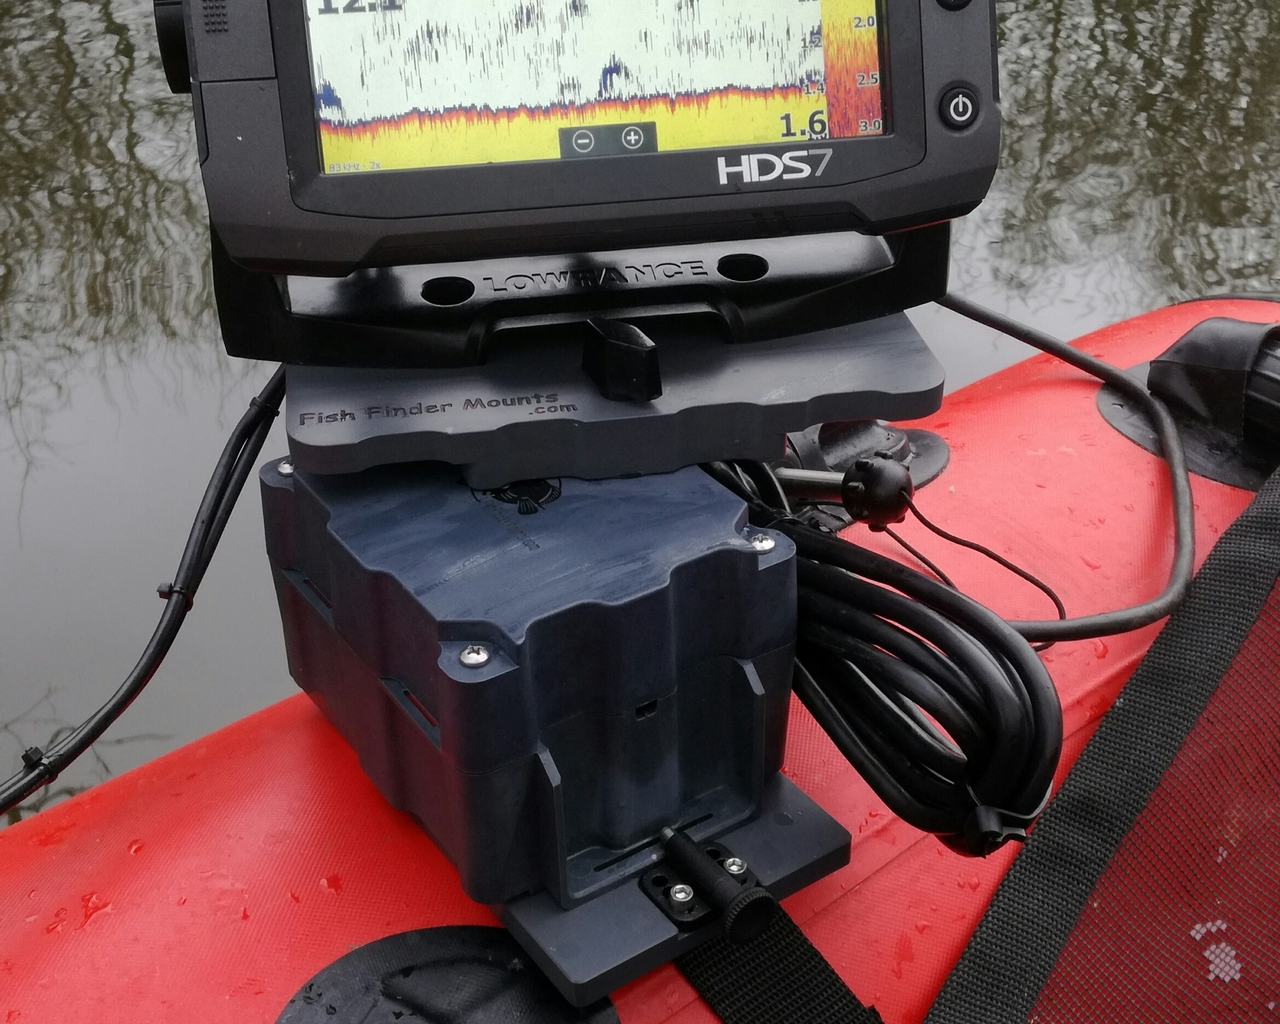 Lowrance HDS7 Fish Finder Mounts